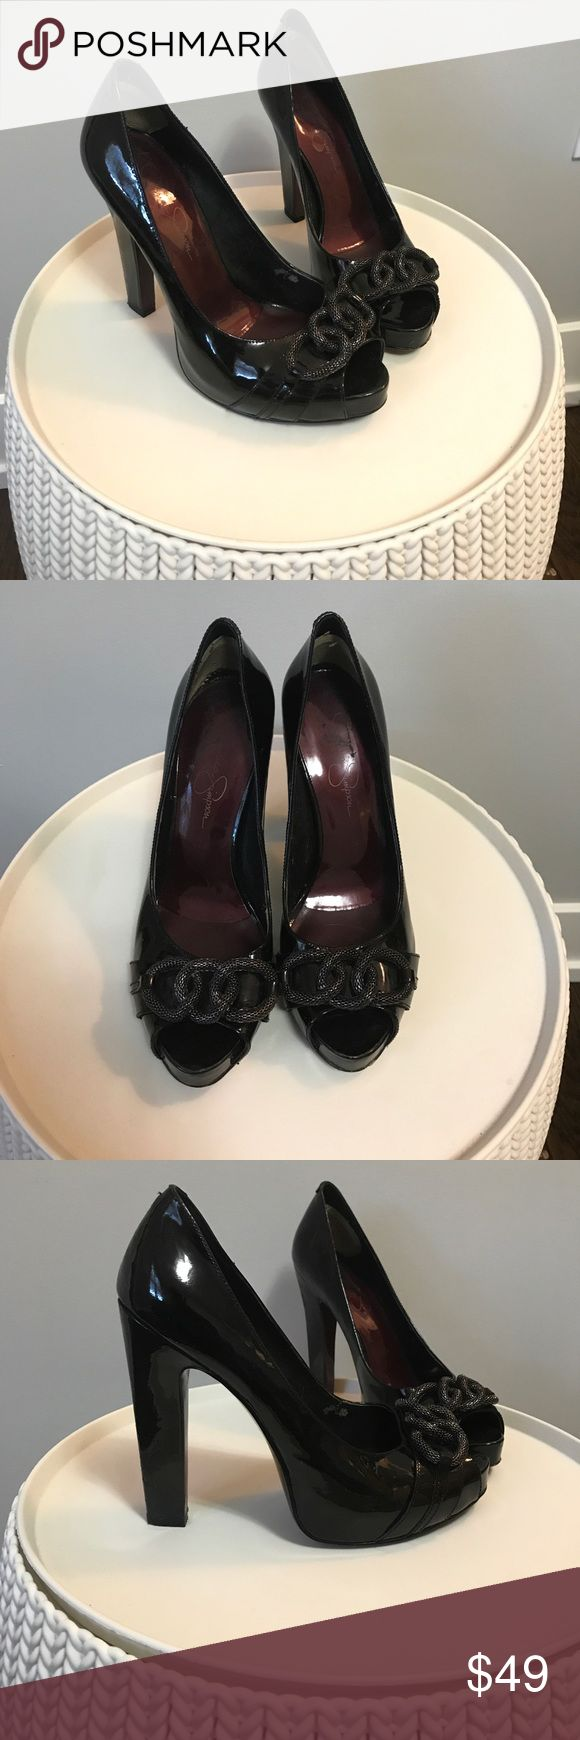 Jessica Simpson black pumps Great condition Jessica Simpson black pumps. Chunky heal makes for a more comfortable night out. Jessica Simpson Shoes Heels